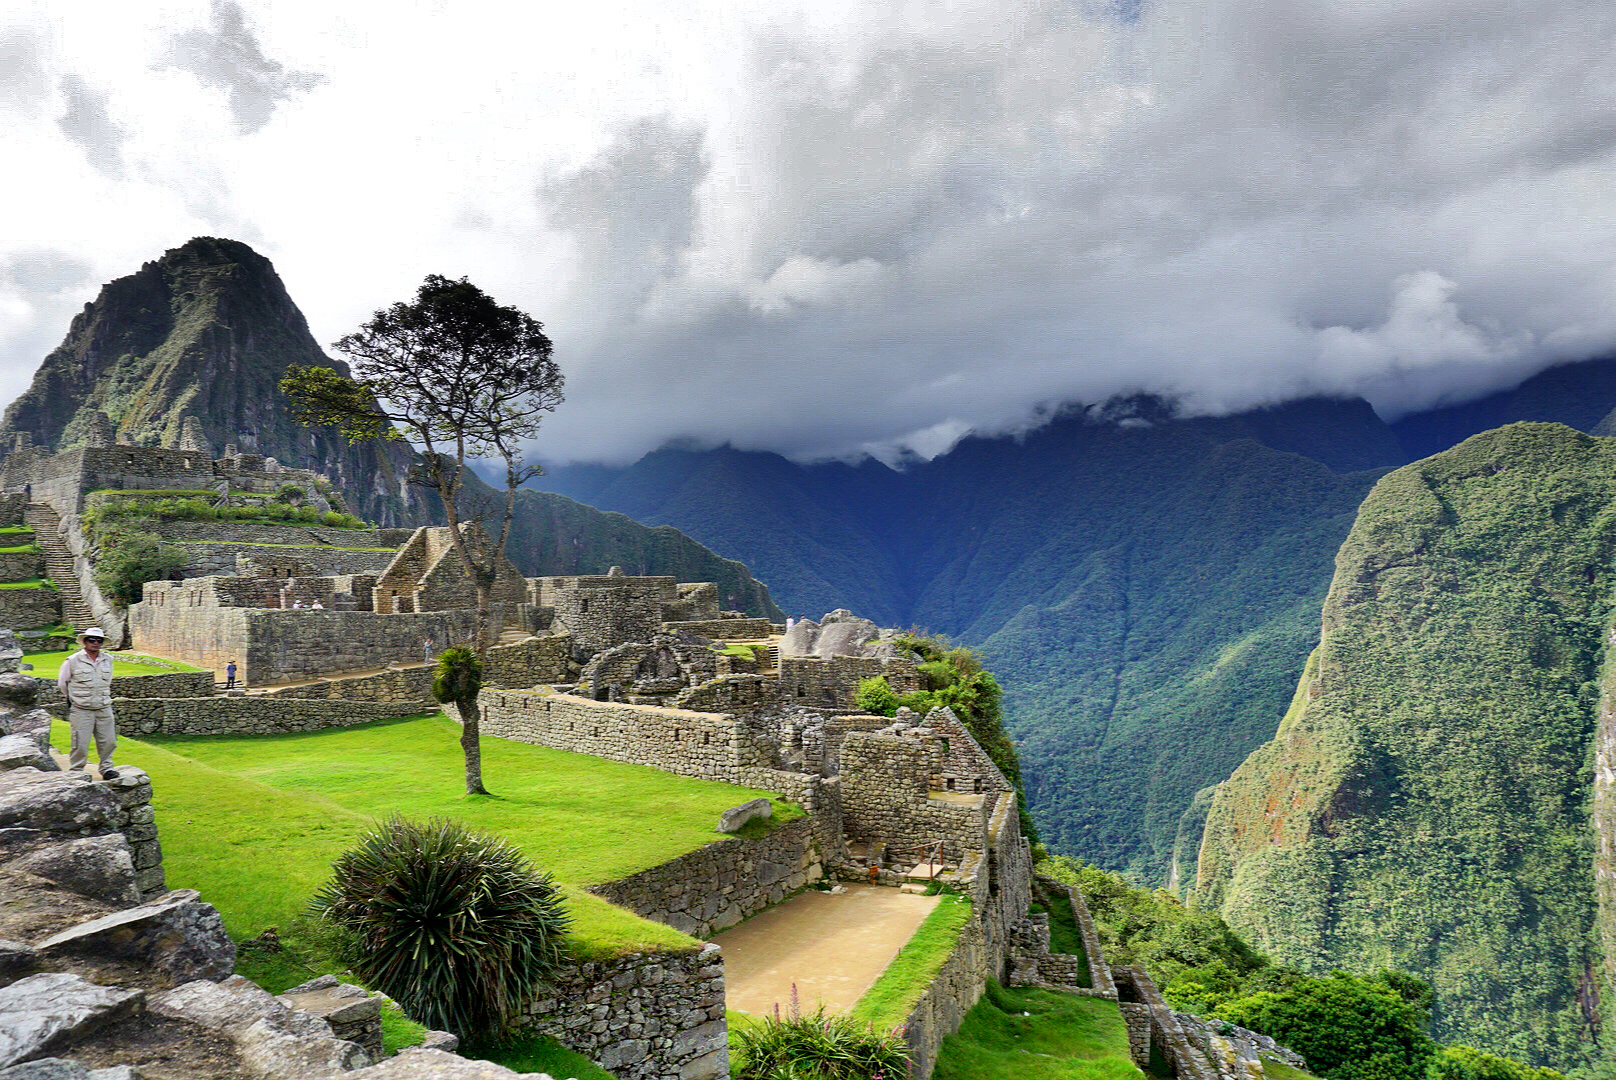 lost-city-of-the-incas-machu-picchu